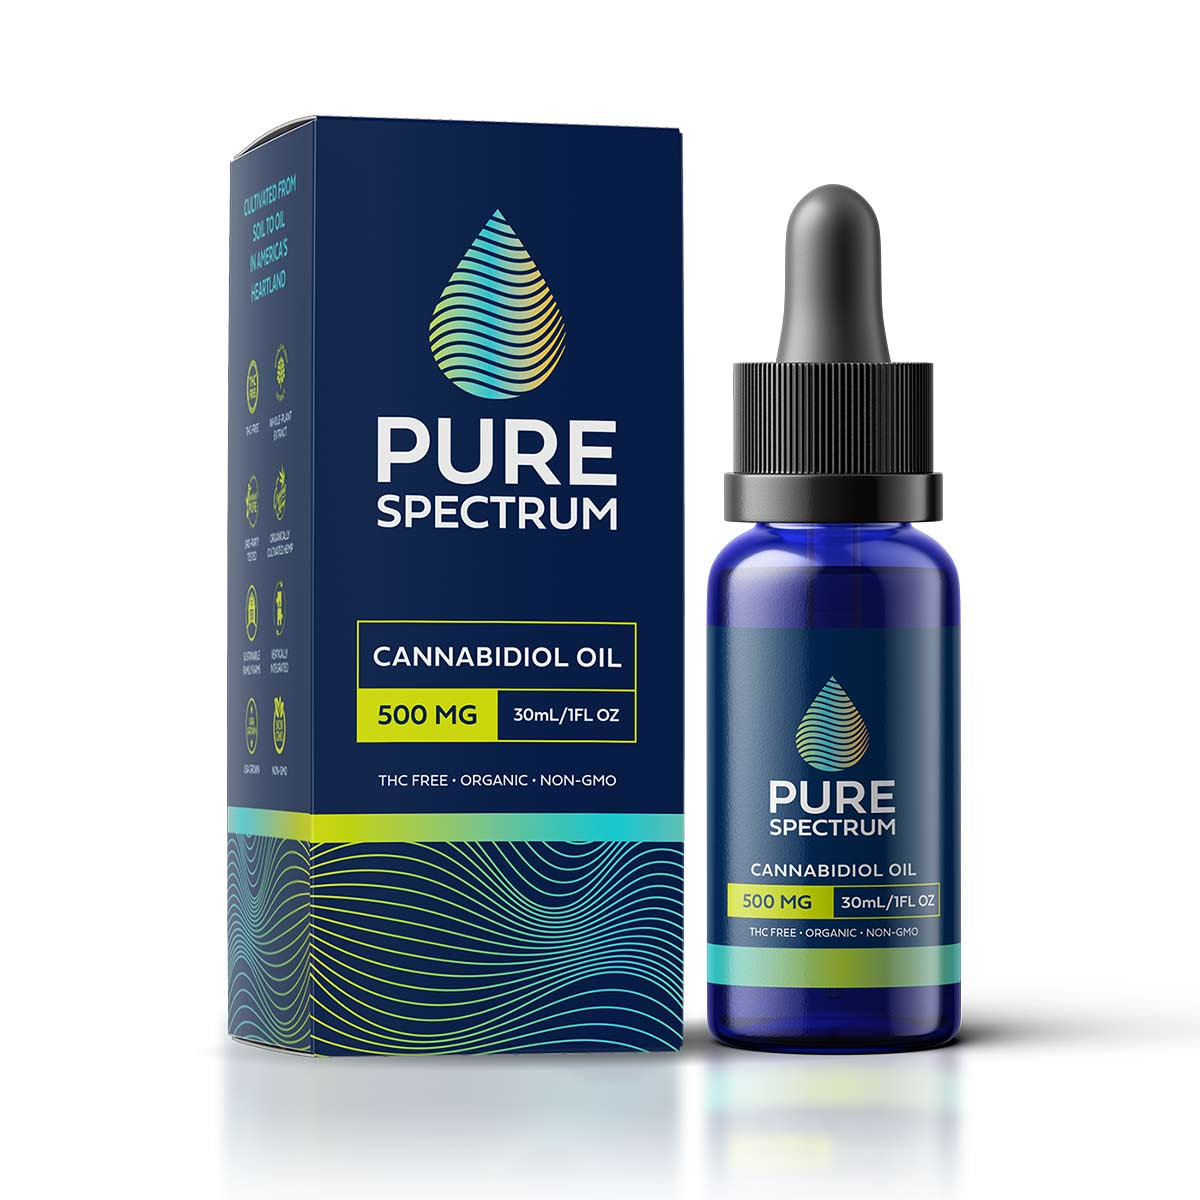 Pure-Spectrum,-CBD-Oil-Tincture,-Cannabidiol-Oil-30ml-500mg-of-CBD